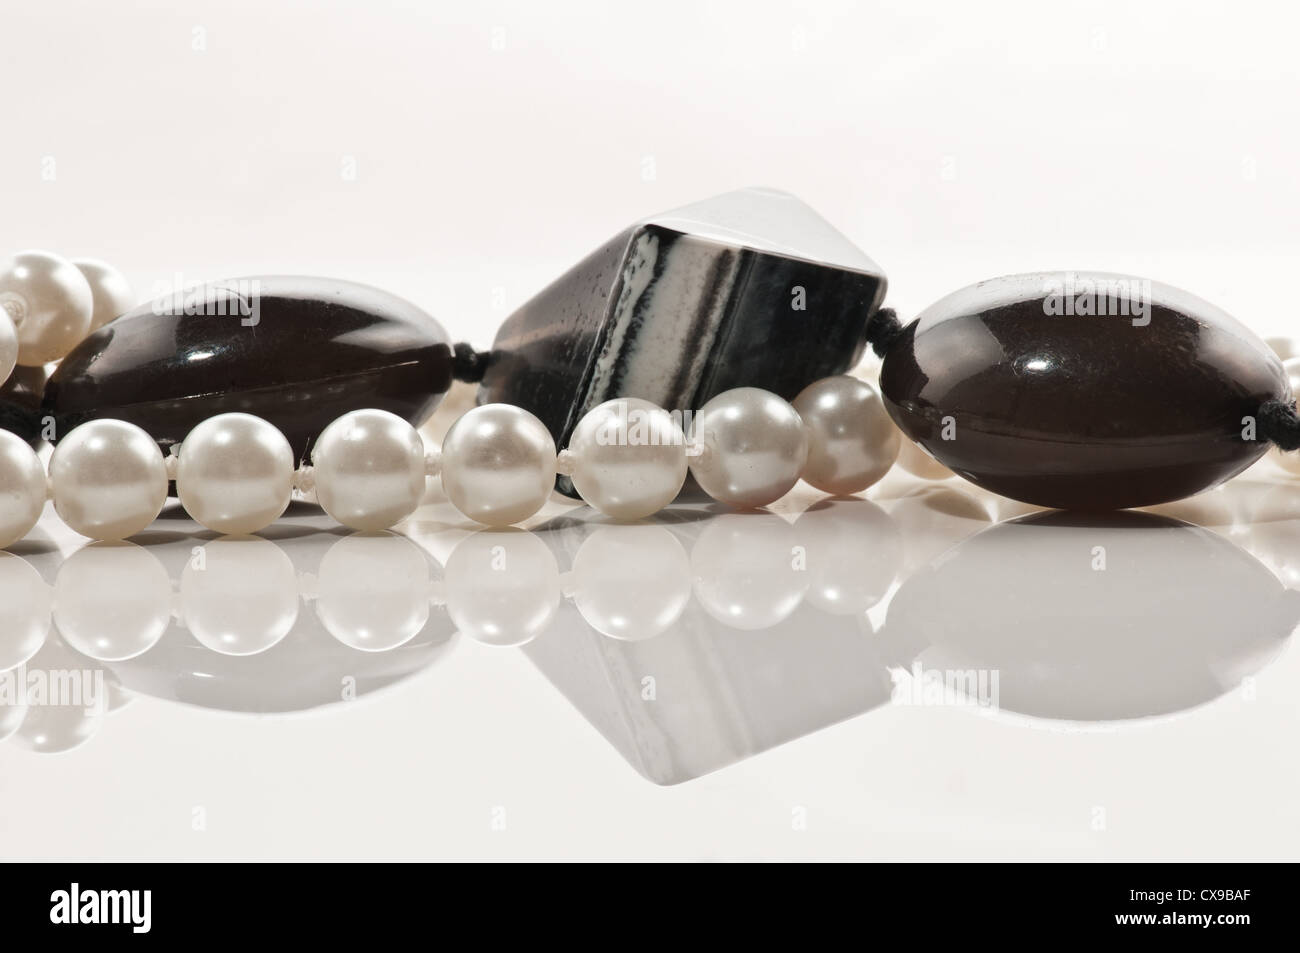 Jewelry earrings necklace Stock Photo, Royalty Free Image: 50608279 ...